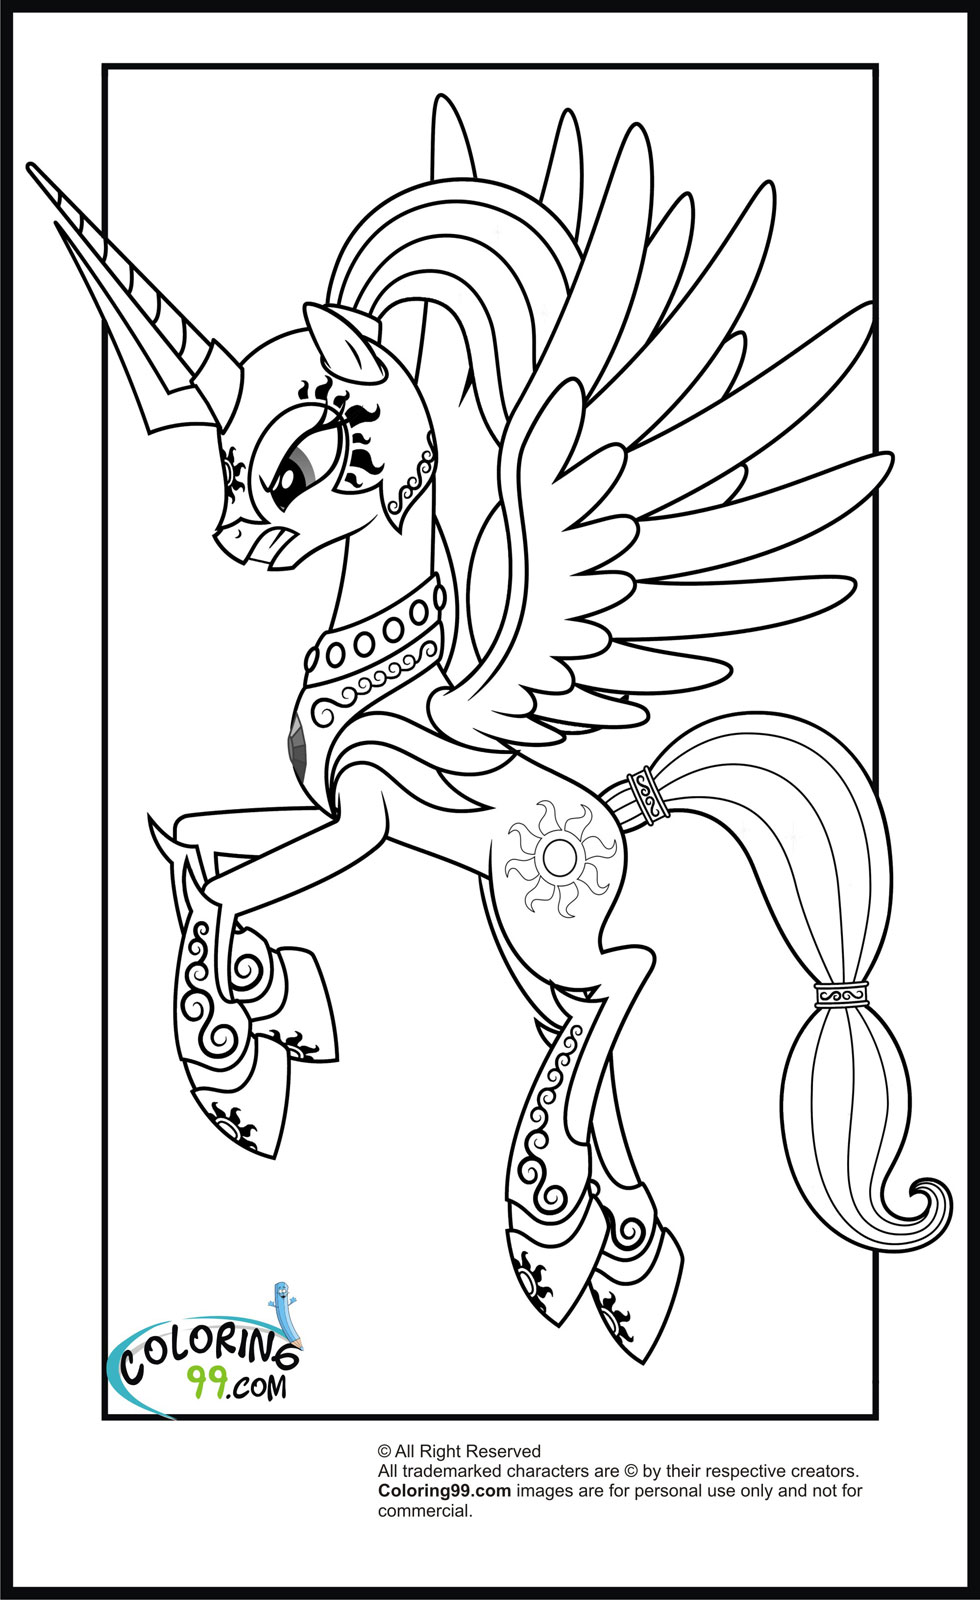 mlp coloring page my little pony coloring pages page coloring mlp 1 1